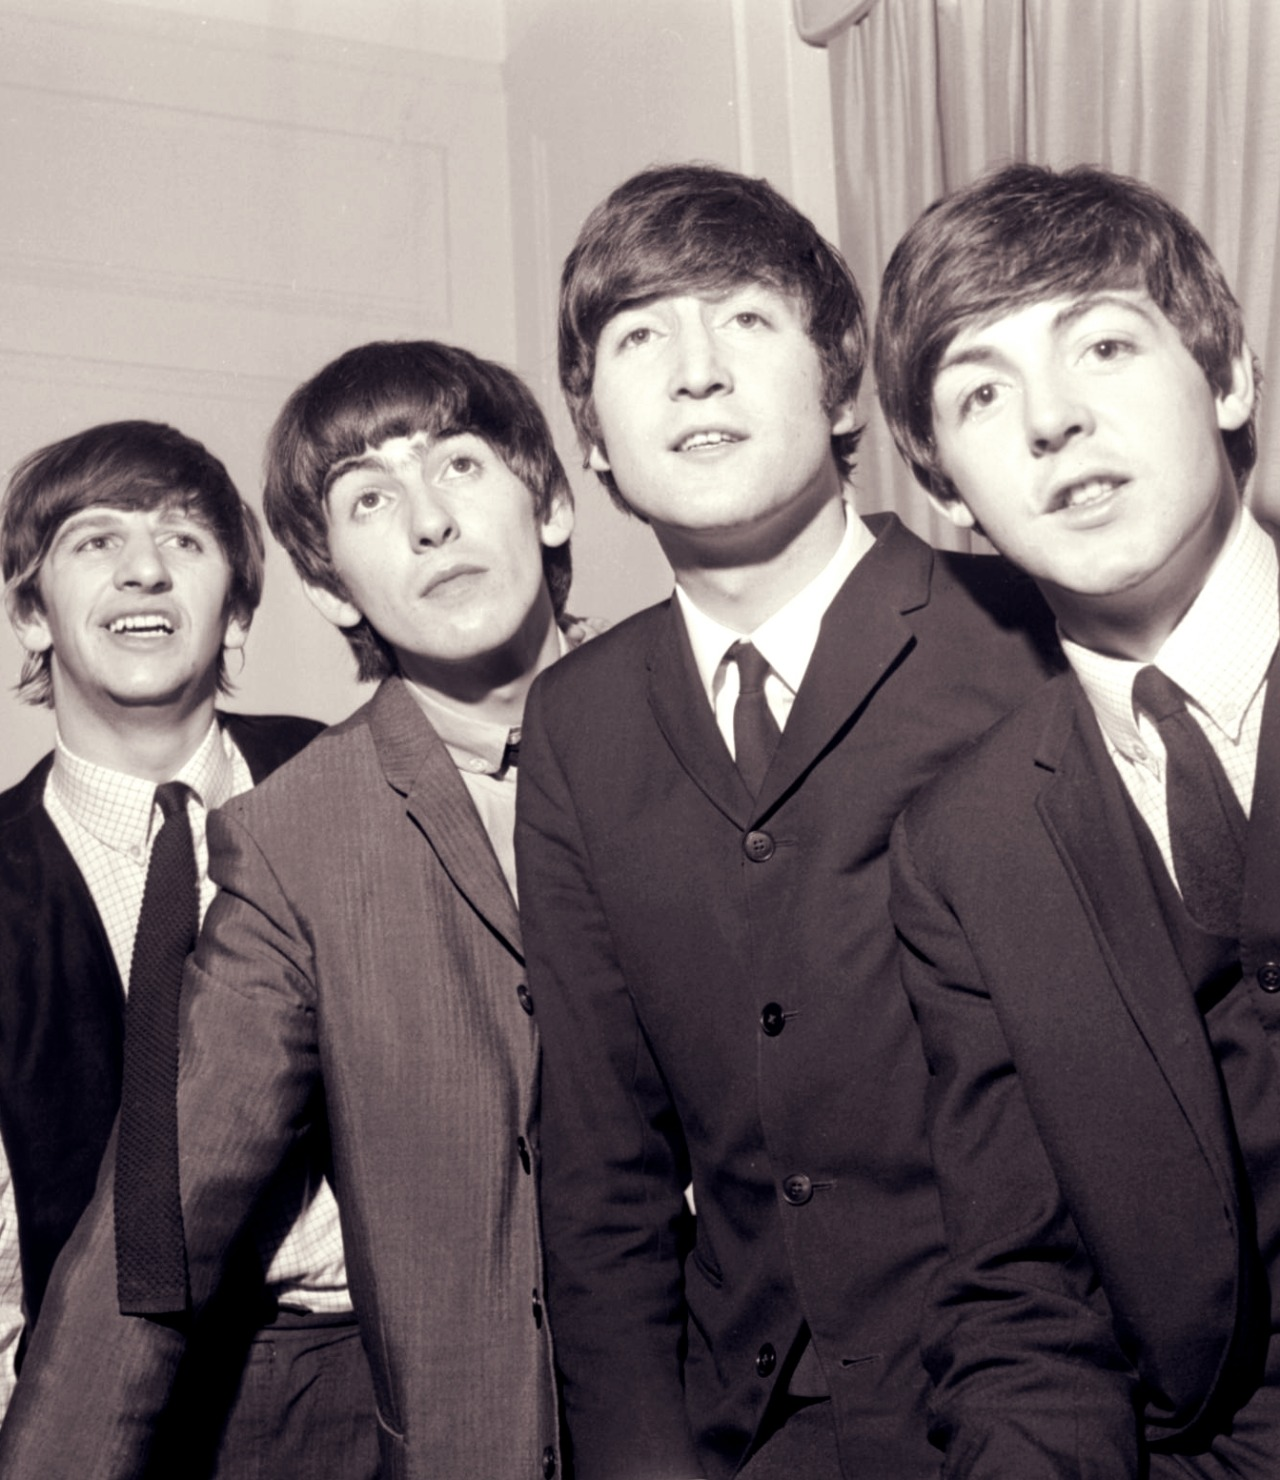 Beatles 4-EVER!!!  John, Paul, George, Ringo!